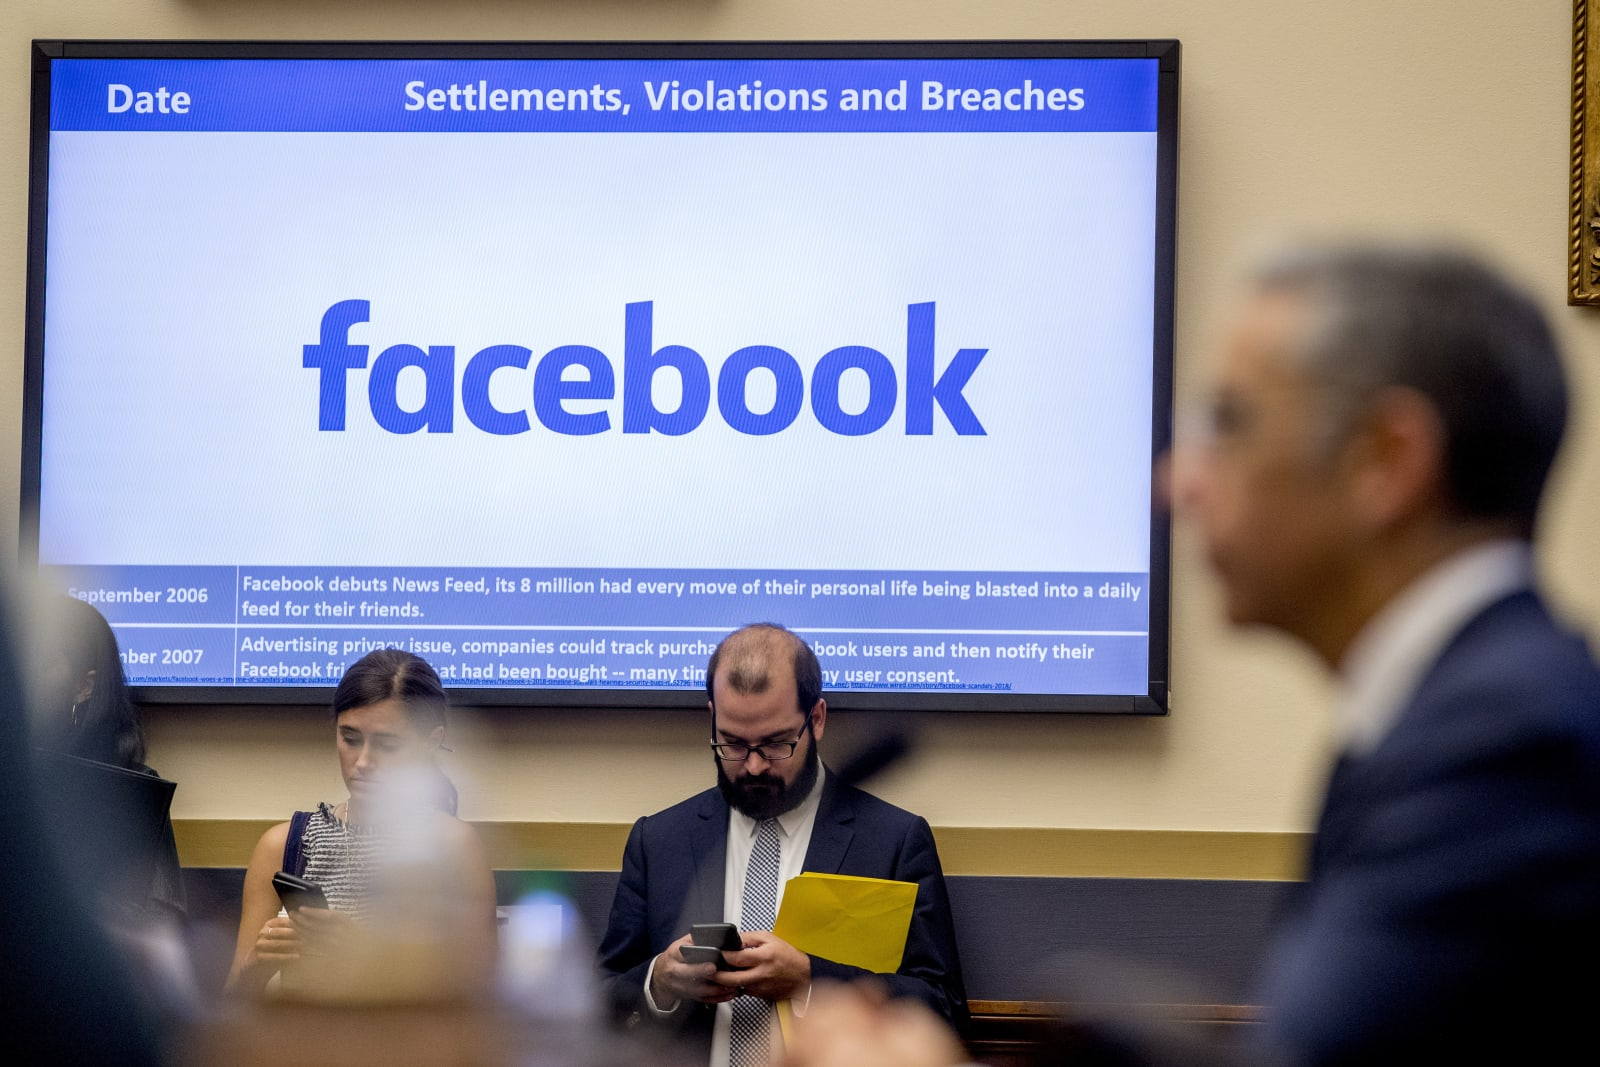 FTC to accuse Facebook of misusing phone numbers and facial recognition